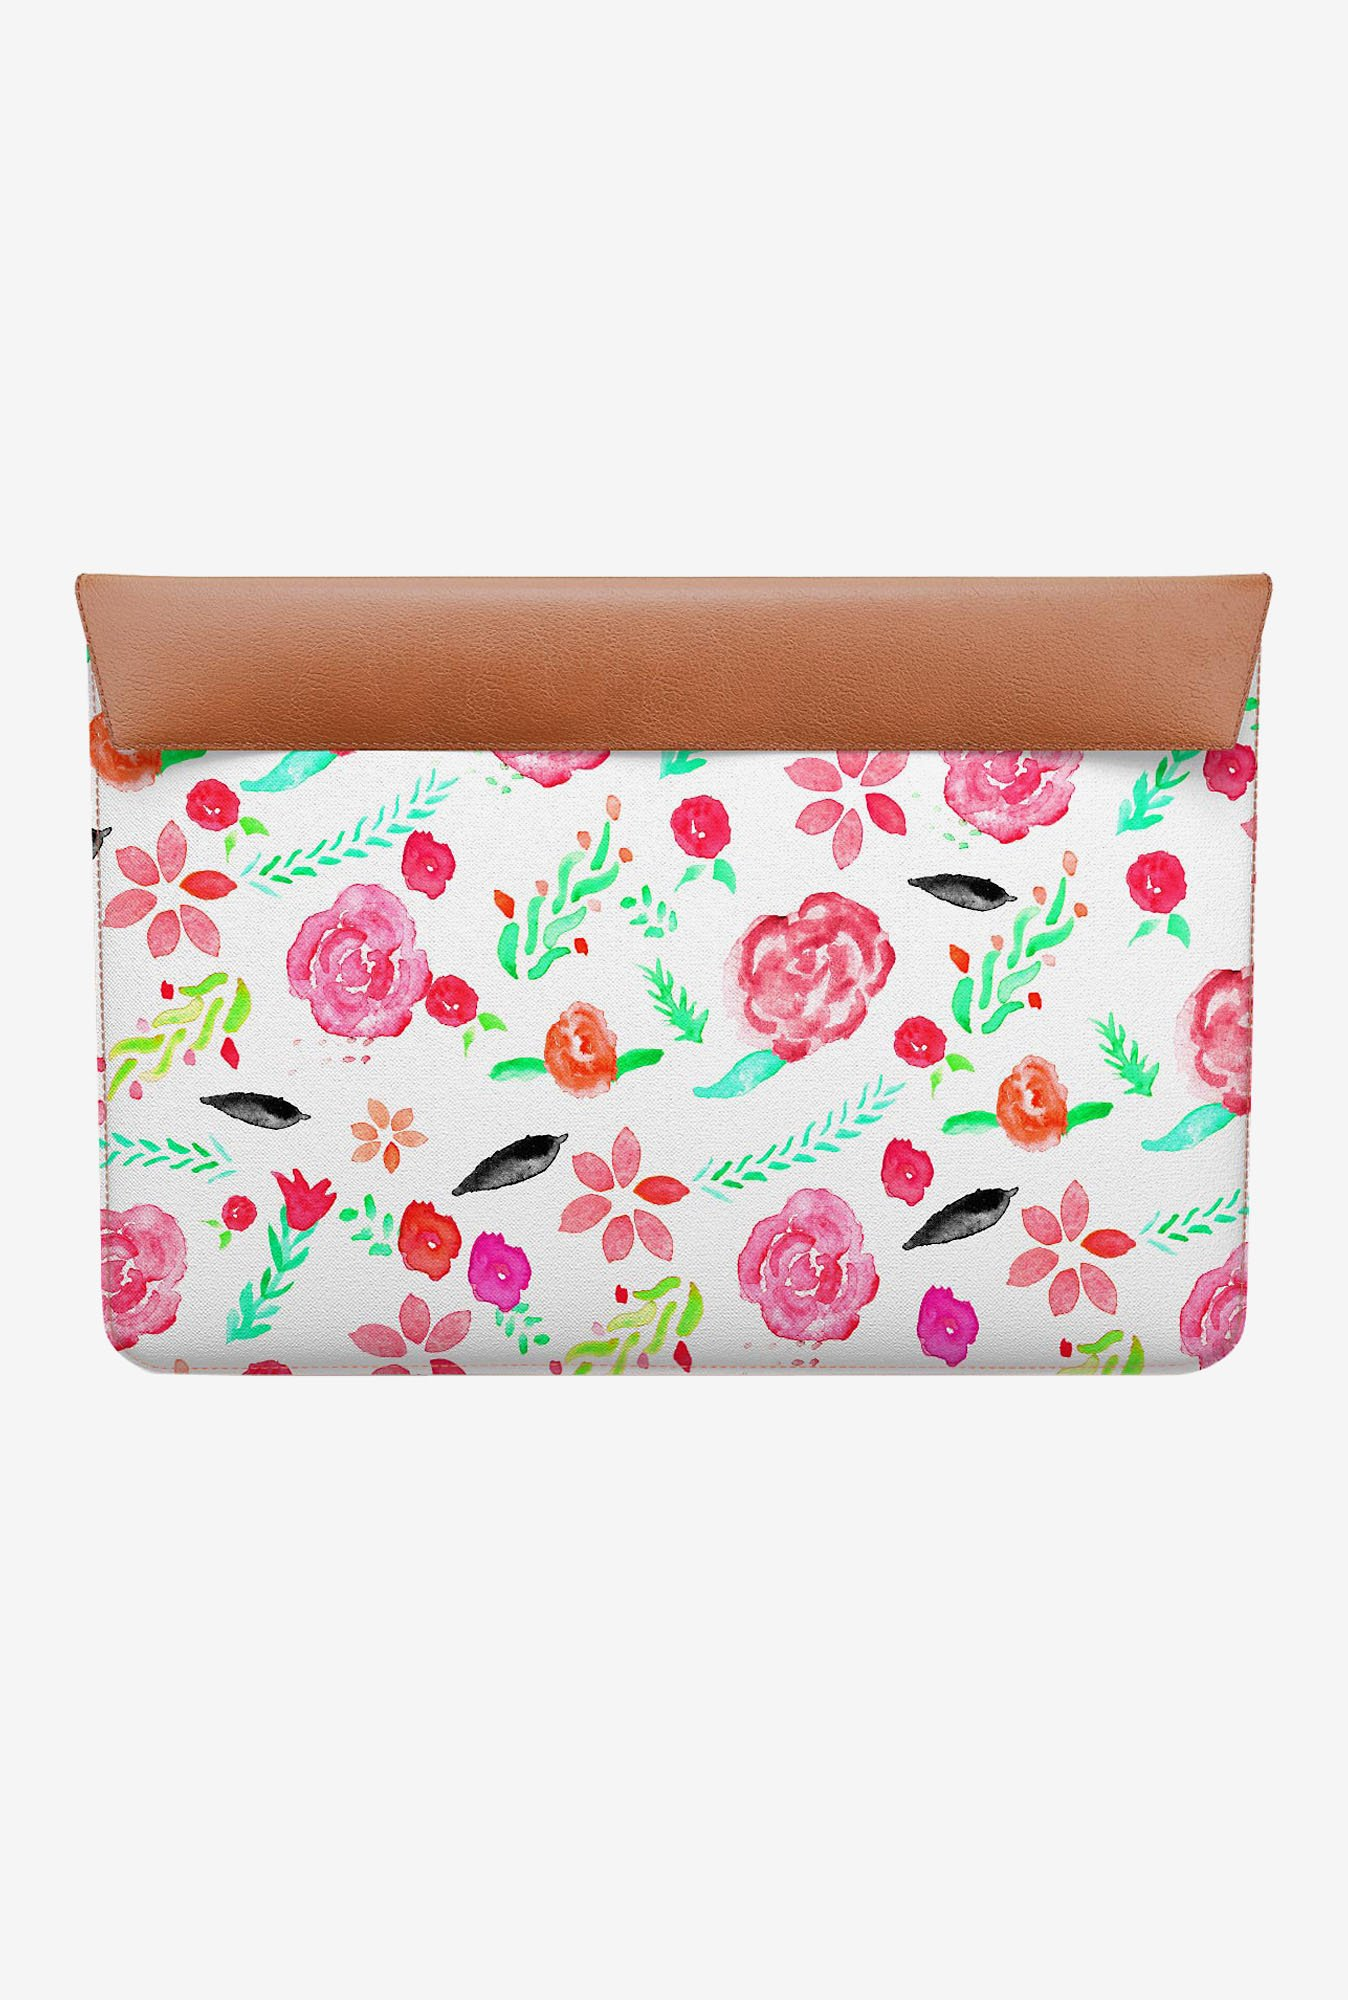 DailyObjects Floral Pattern MacBook Air 11 Envelope Sleeve